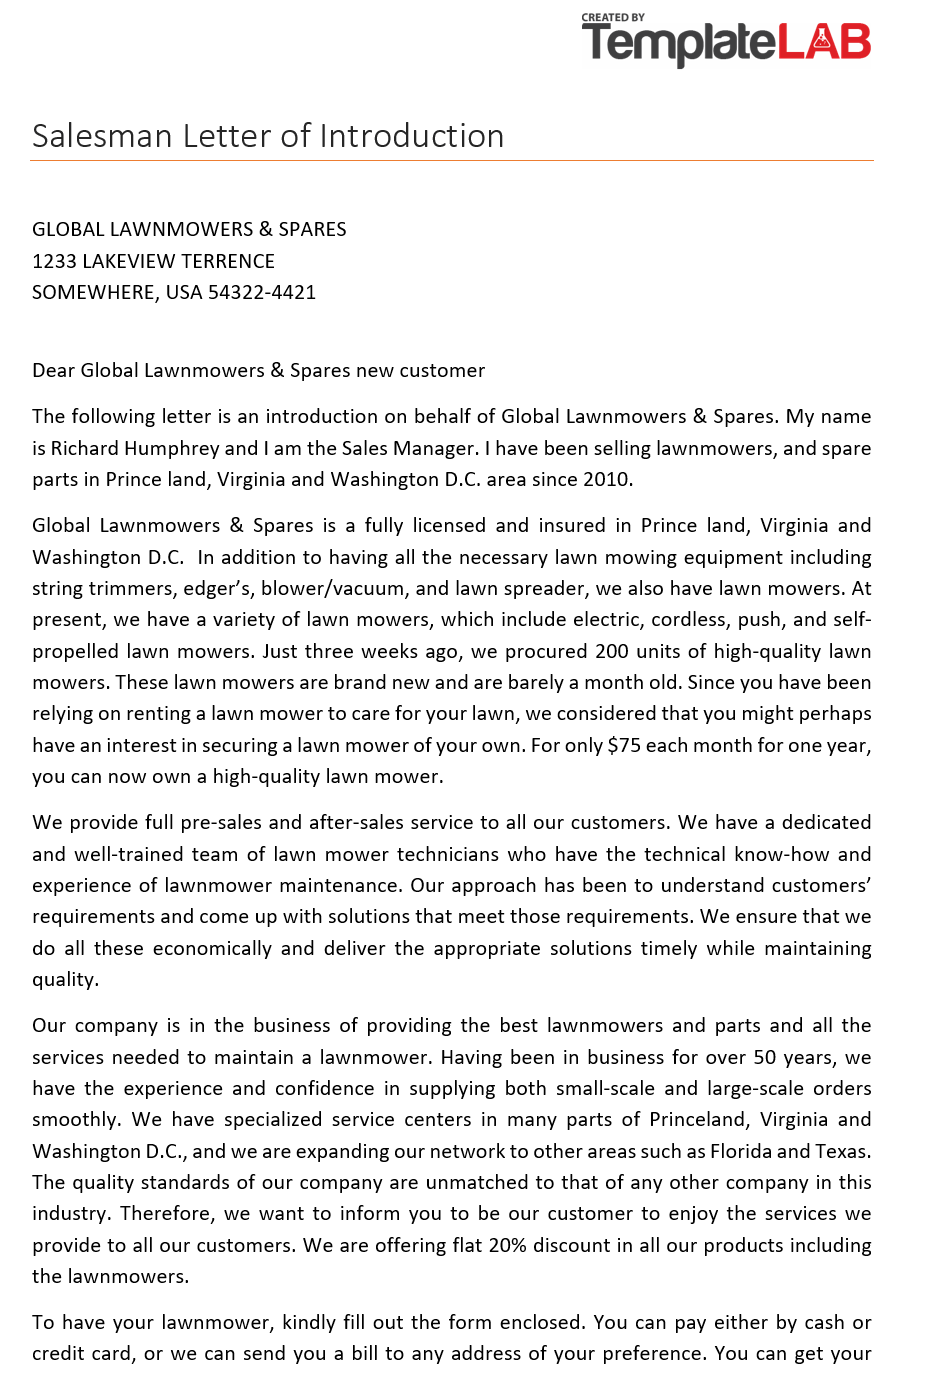 Free Salesman Letter of Introduction 2